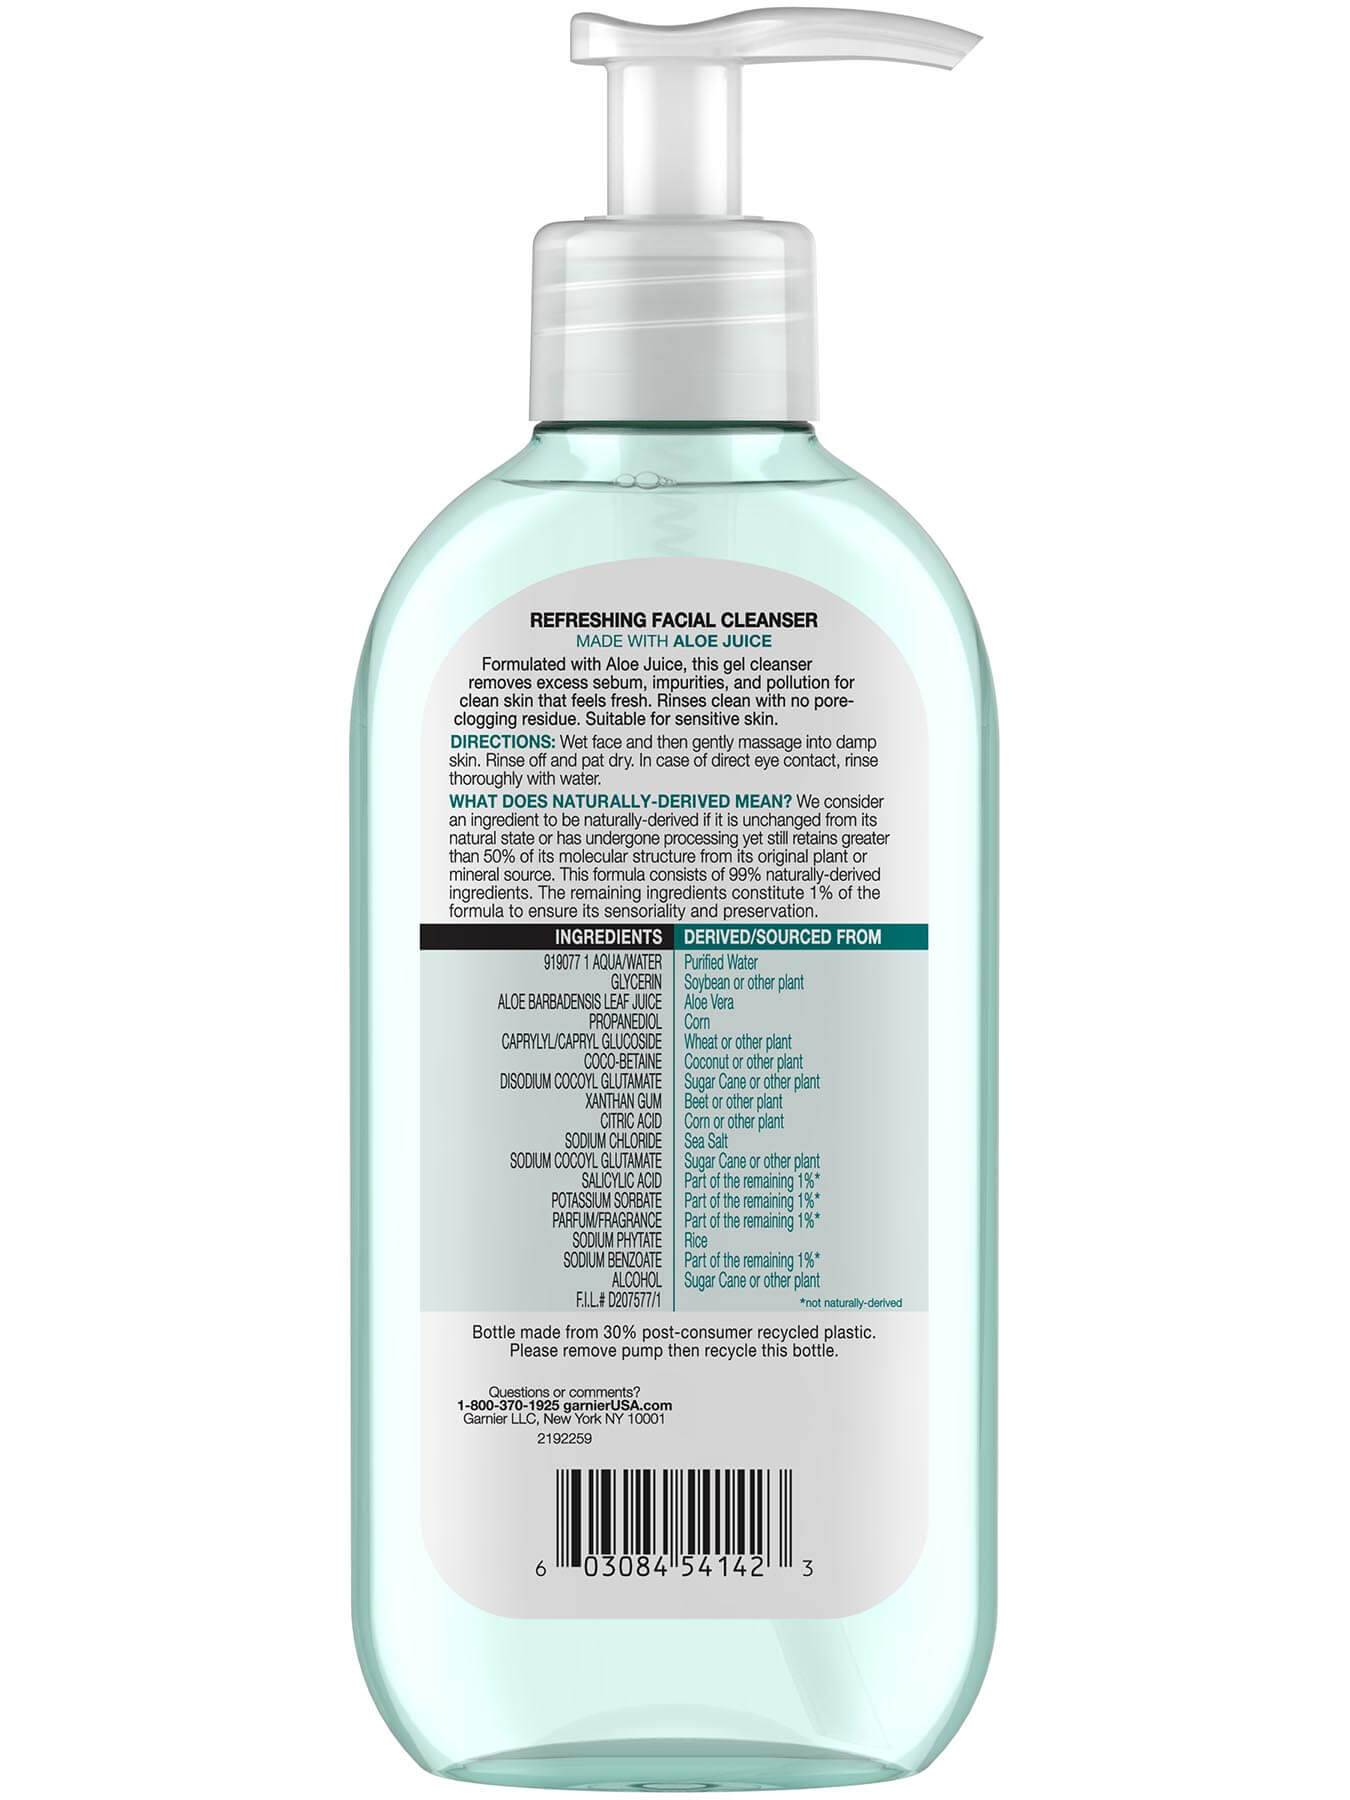 Garnier SkinActive Refreshing Facial Wash with Aloe 96 Percent Naturally Derived Ingredients